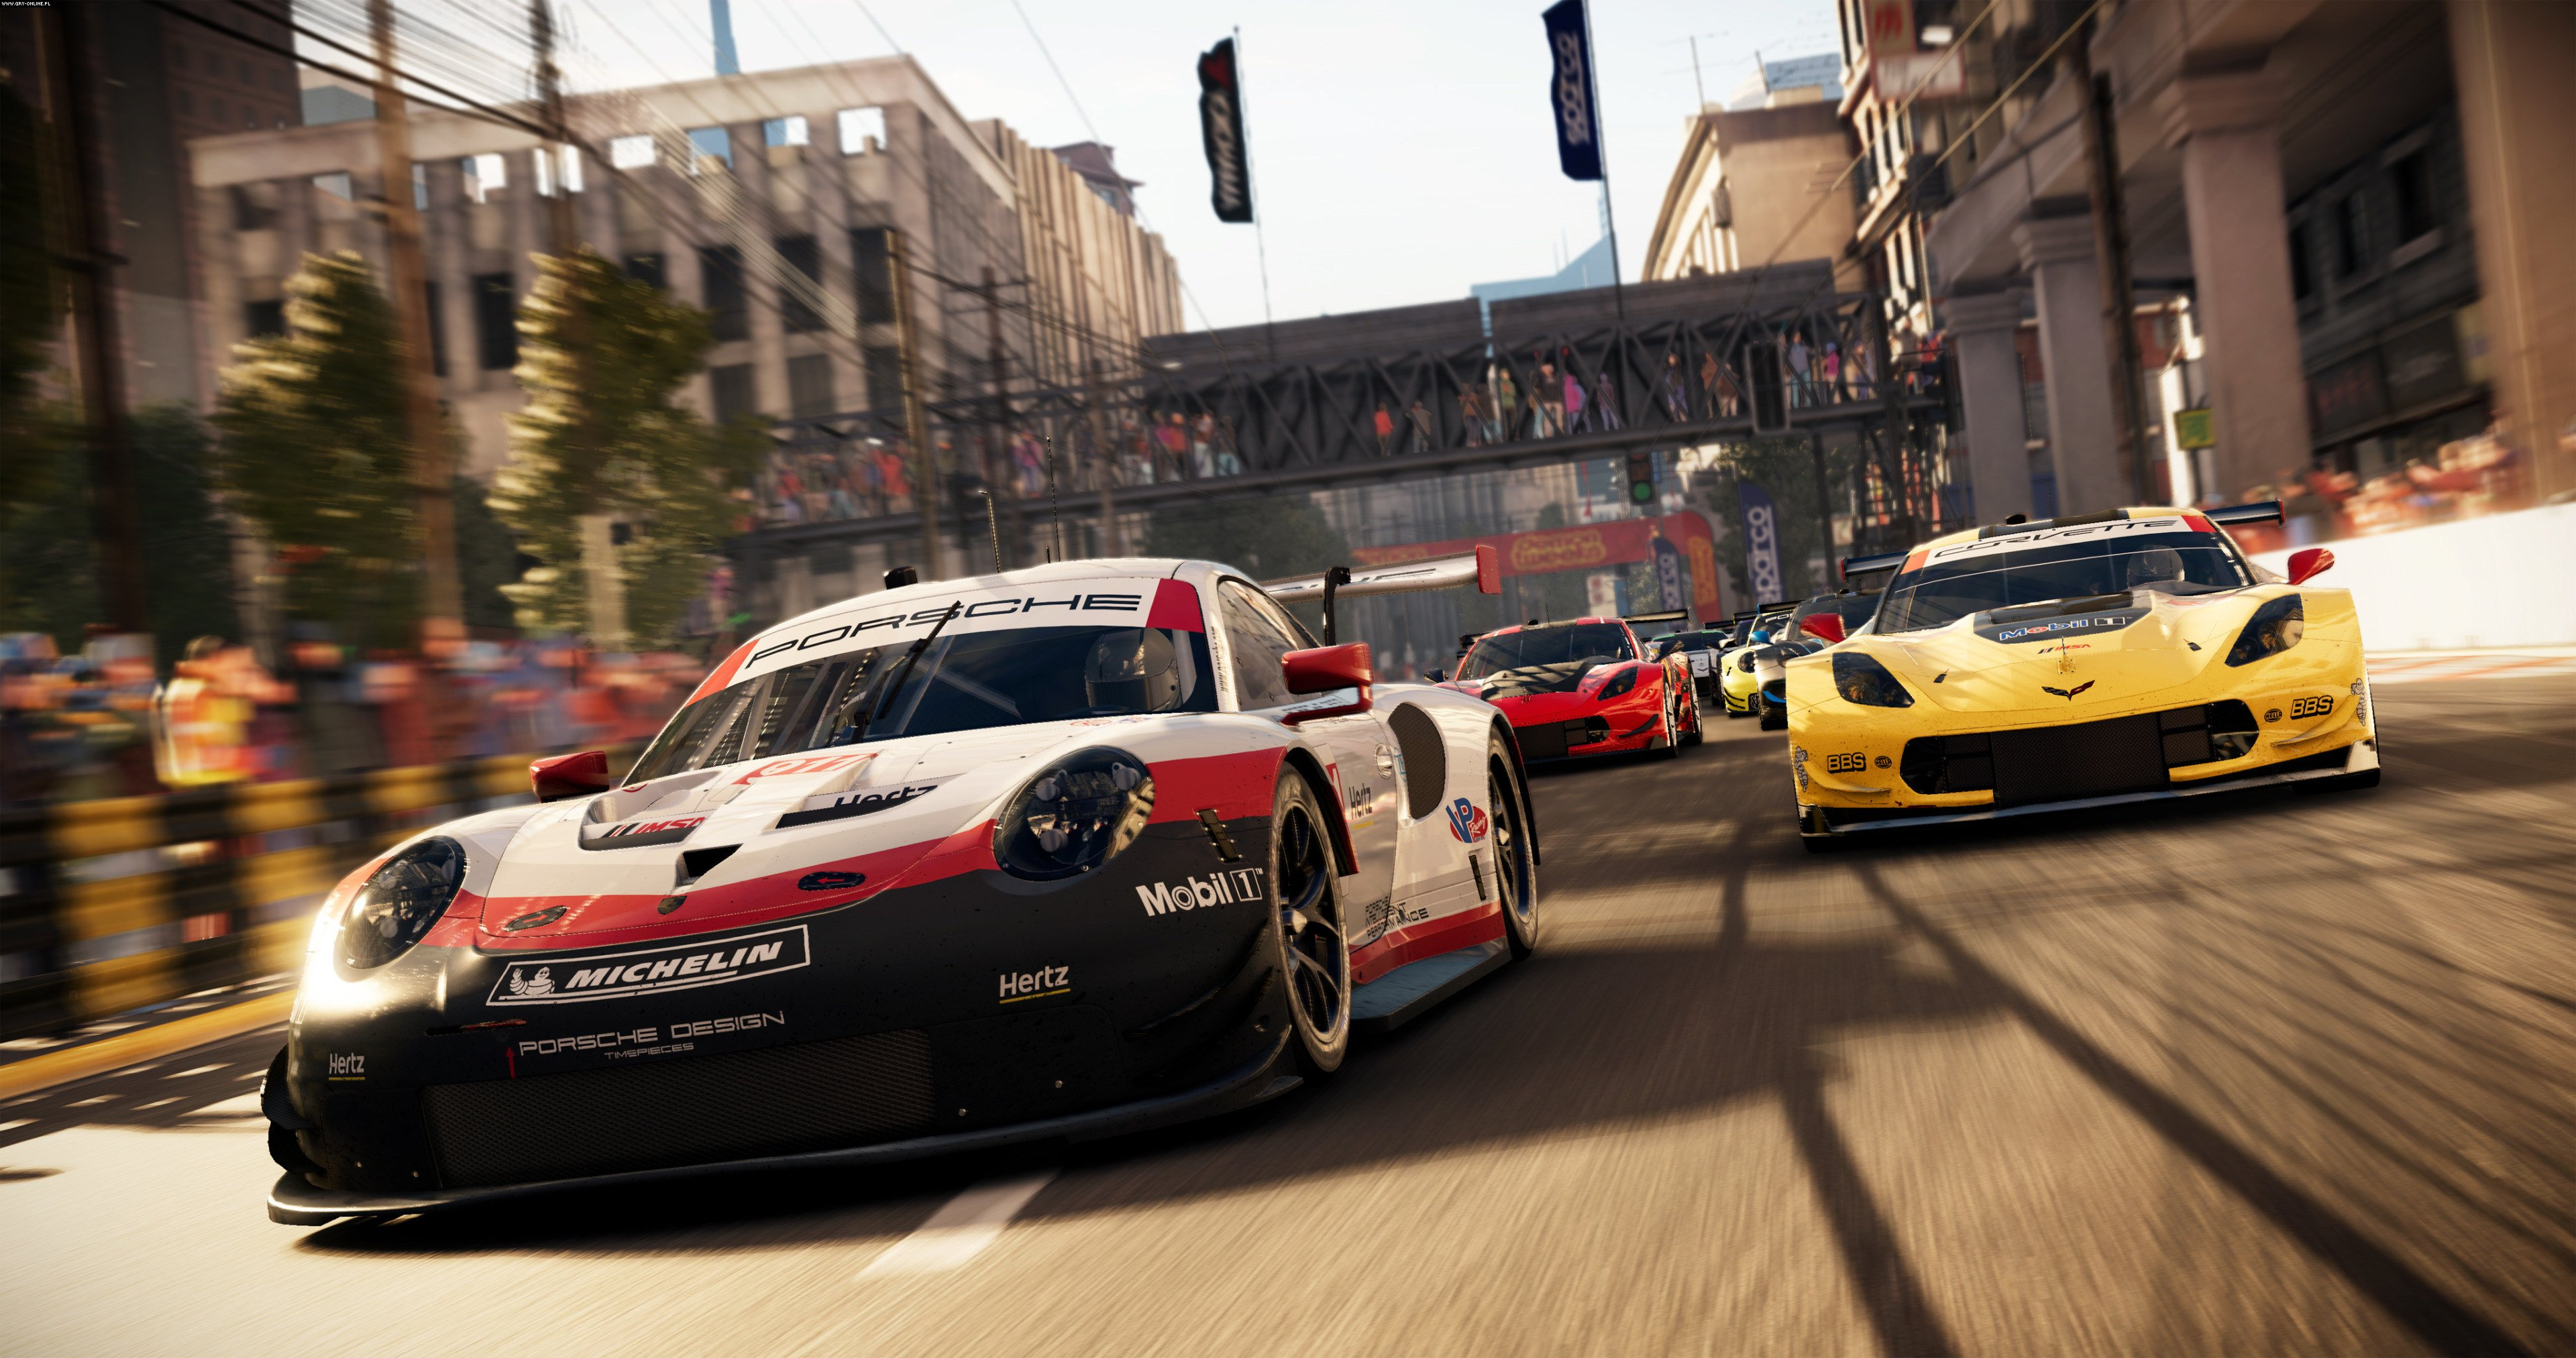 GRID PC, PS4, XONE Games Image 75/85, Codemasters Software